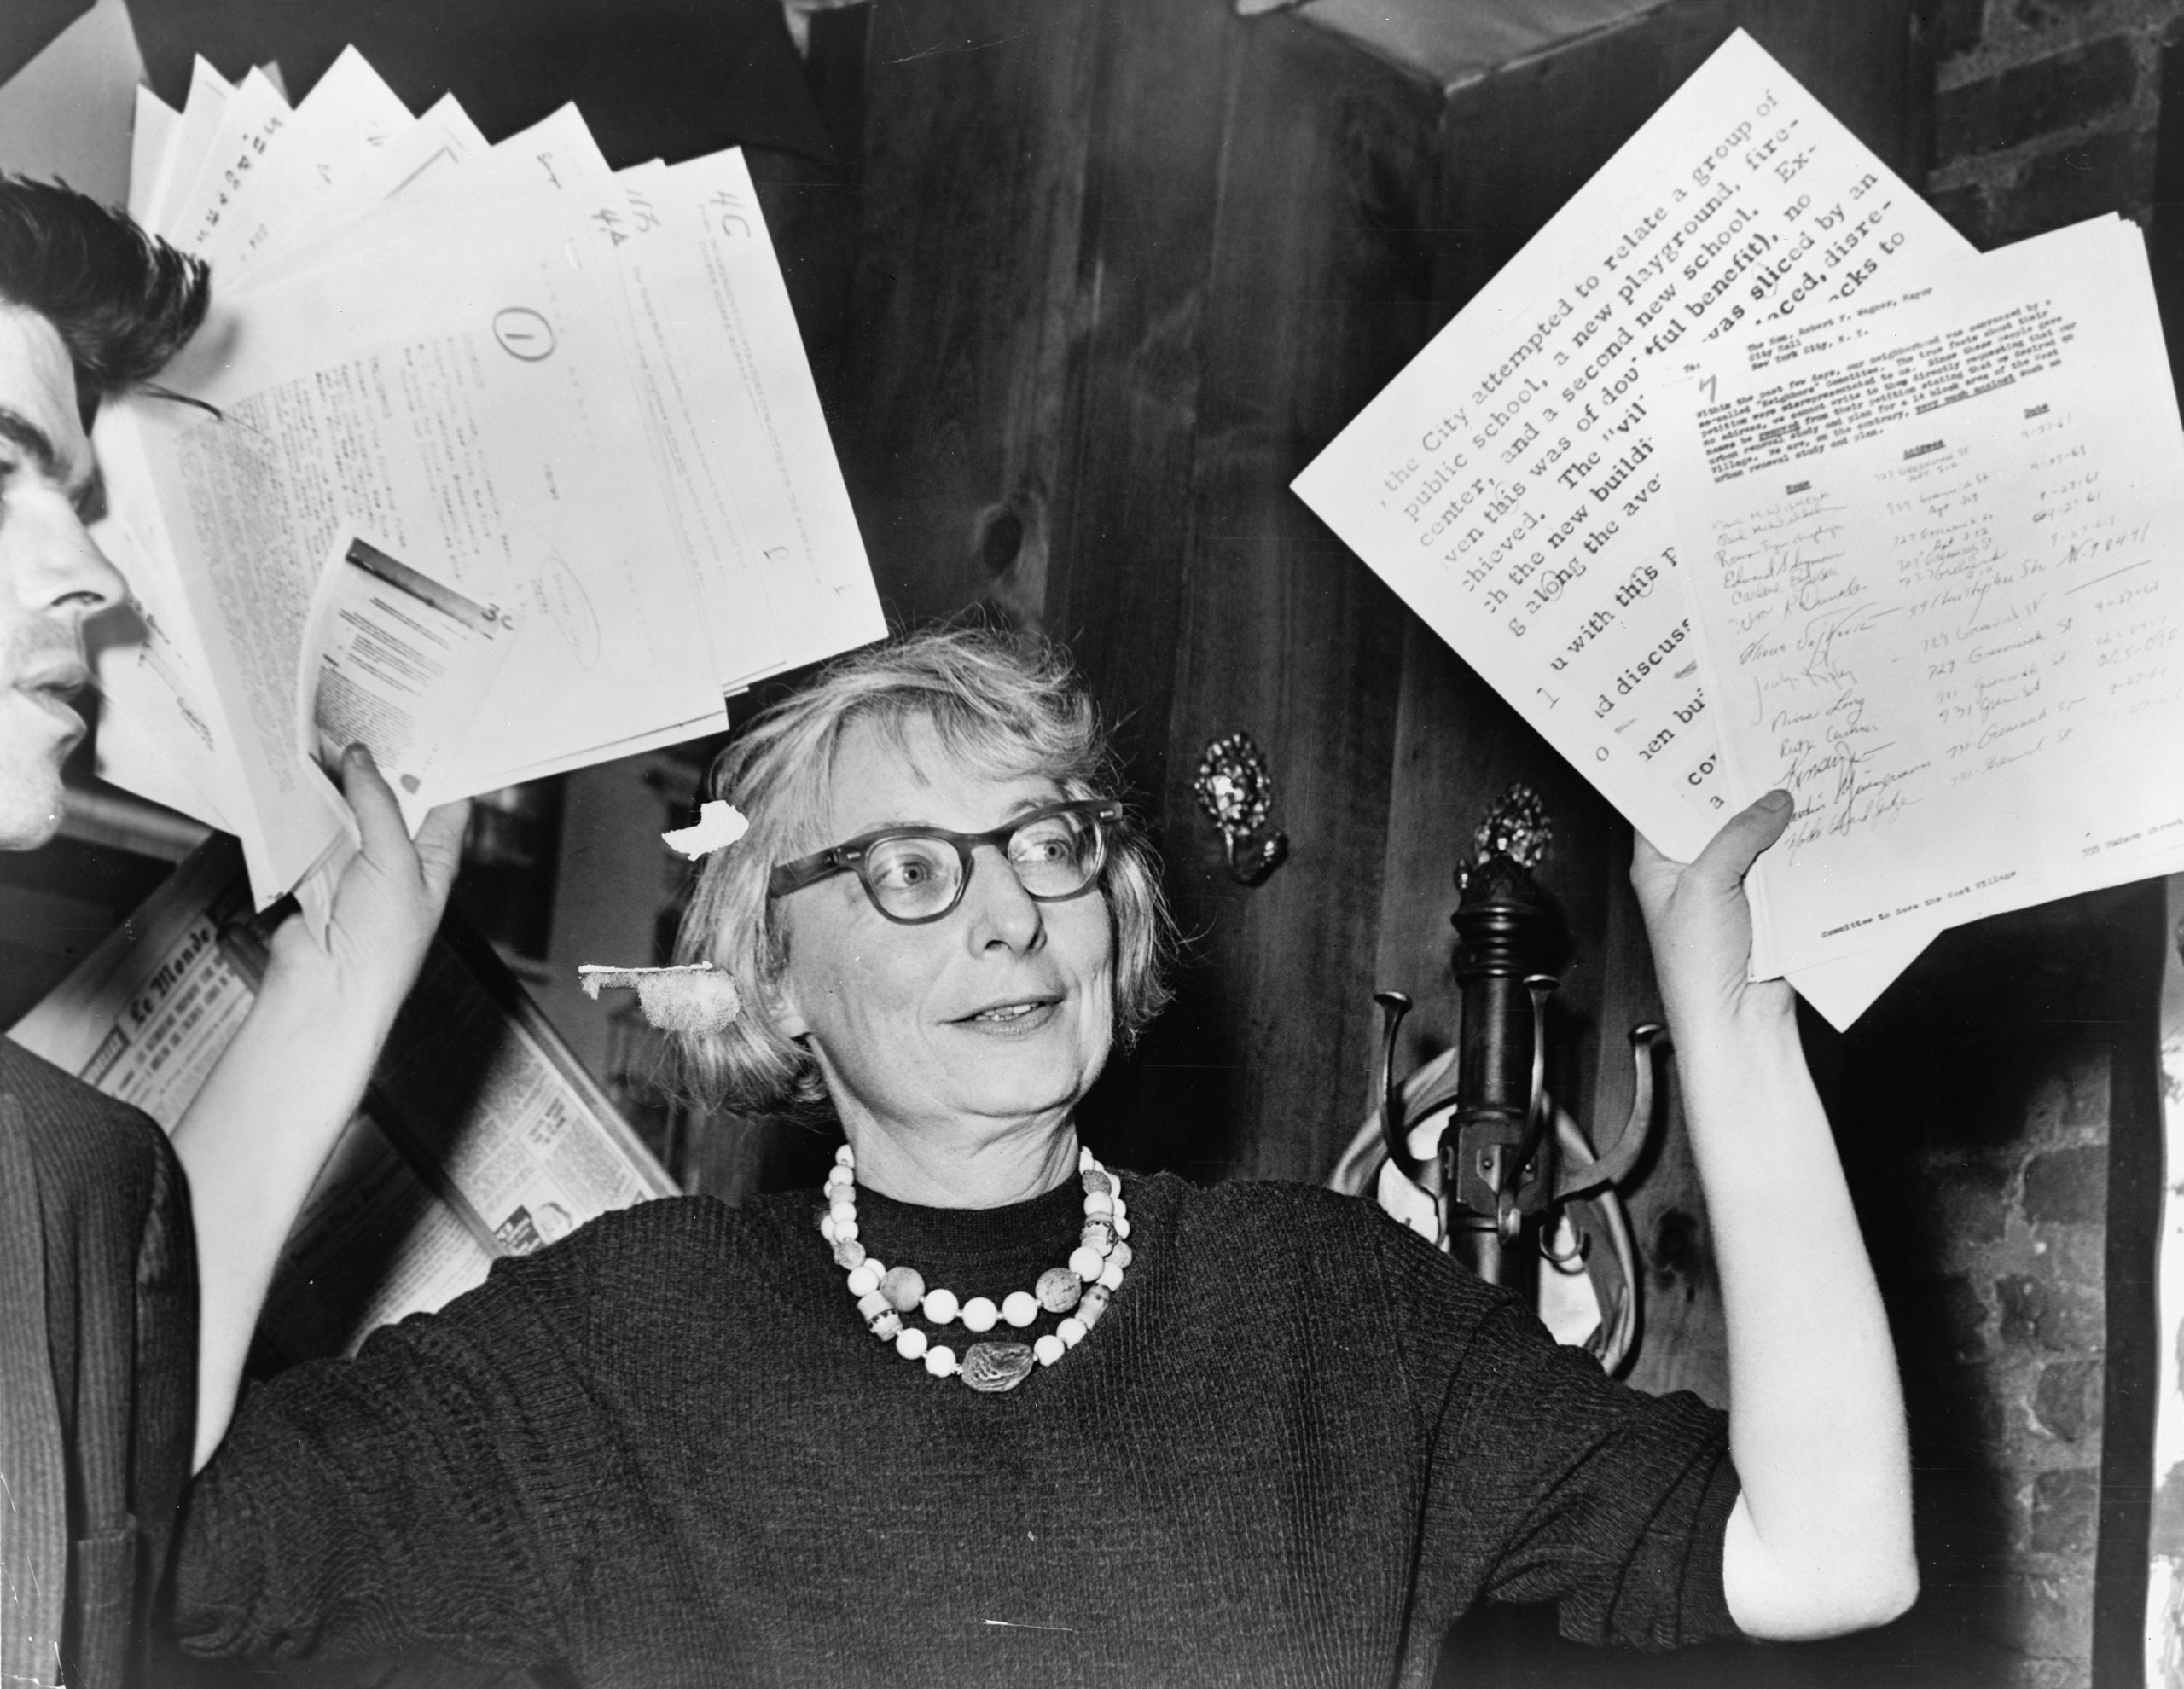 Mrs. Jane Jacobs, chairman of the Comm. to save the West Village holds up documentary evidence at press conference at Lions Head Restaurant at Hudson & Charles Streets. World Telegram & Sun photo by Phil Stanziola.